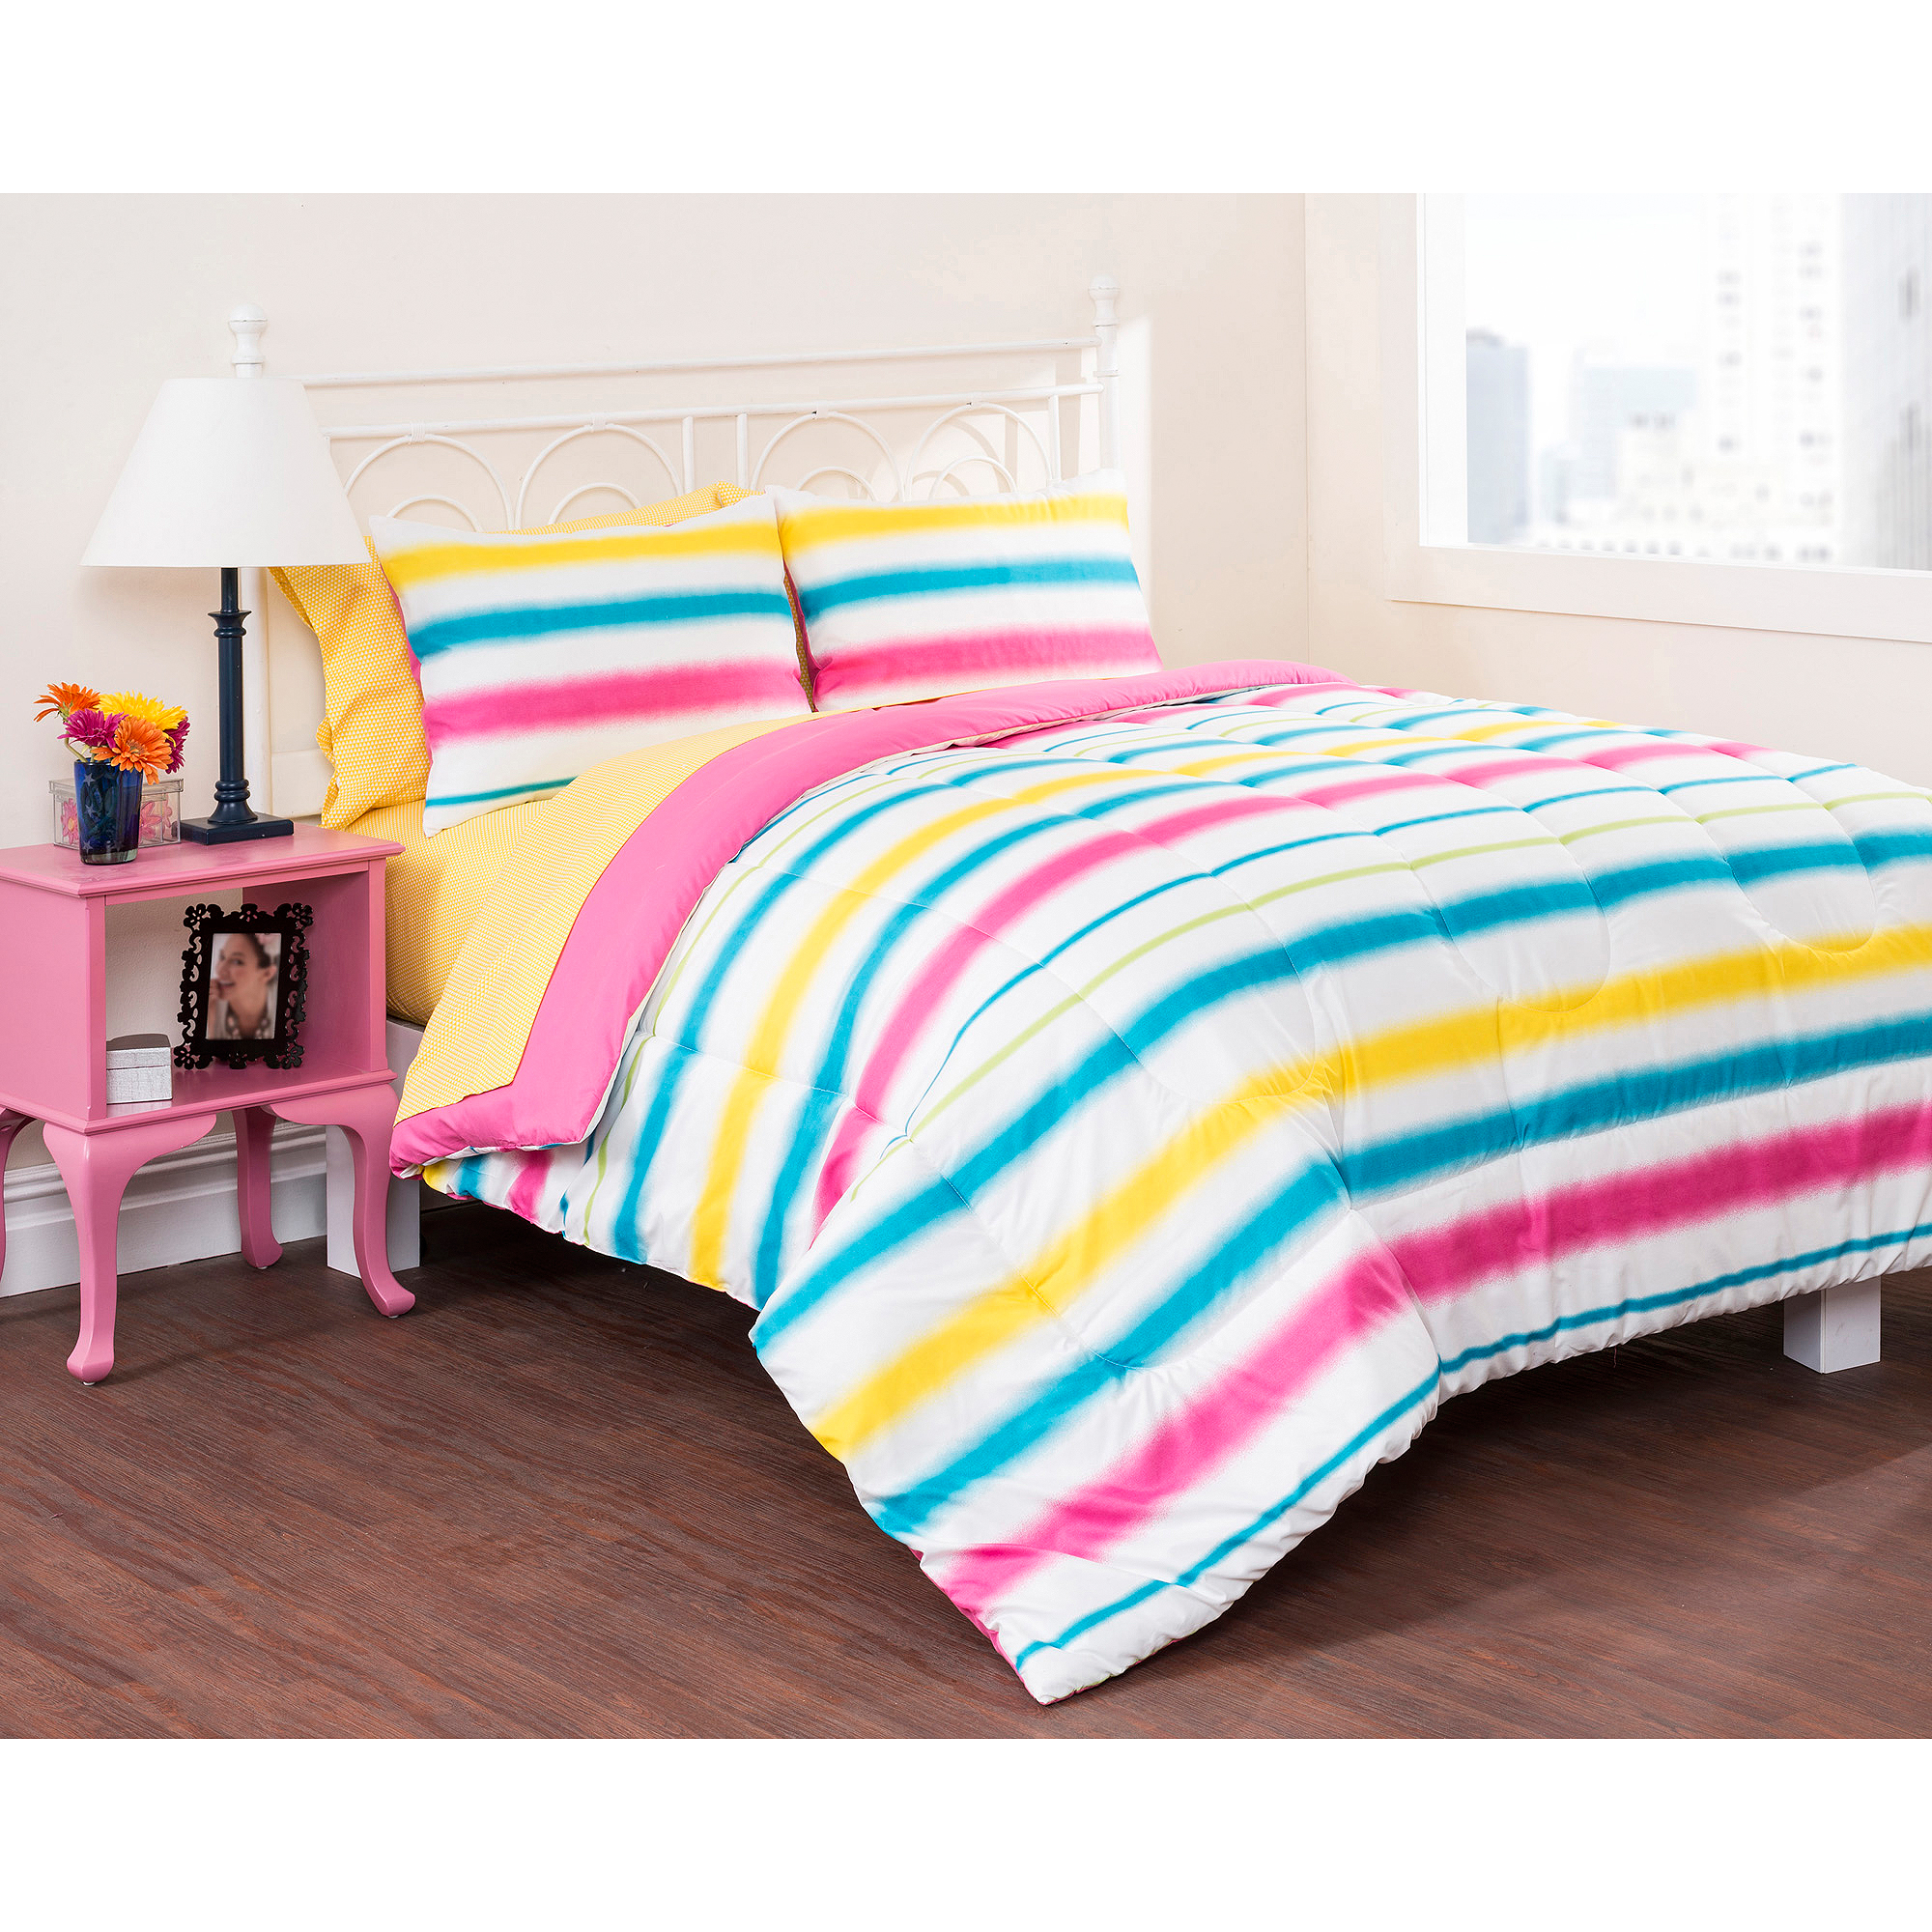 Latitude Watercolor Stripe Bed in a Bag Bedding Set